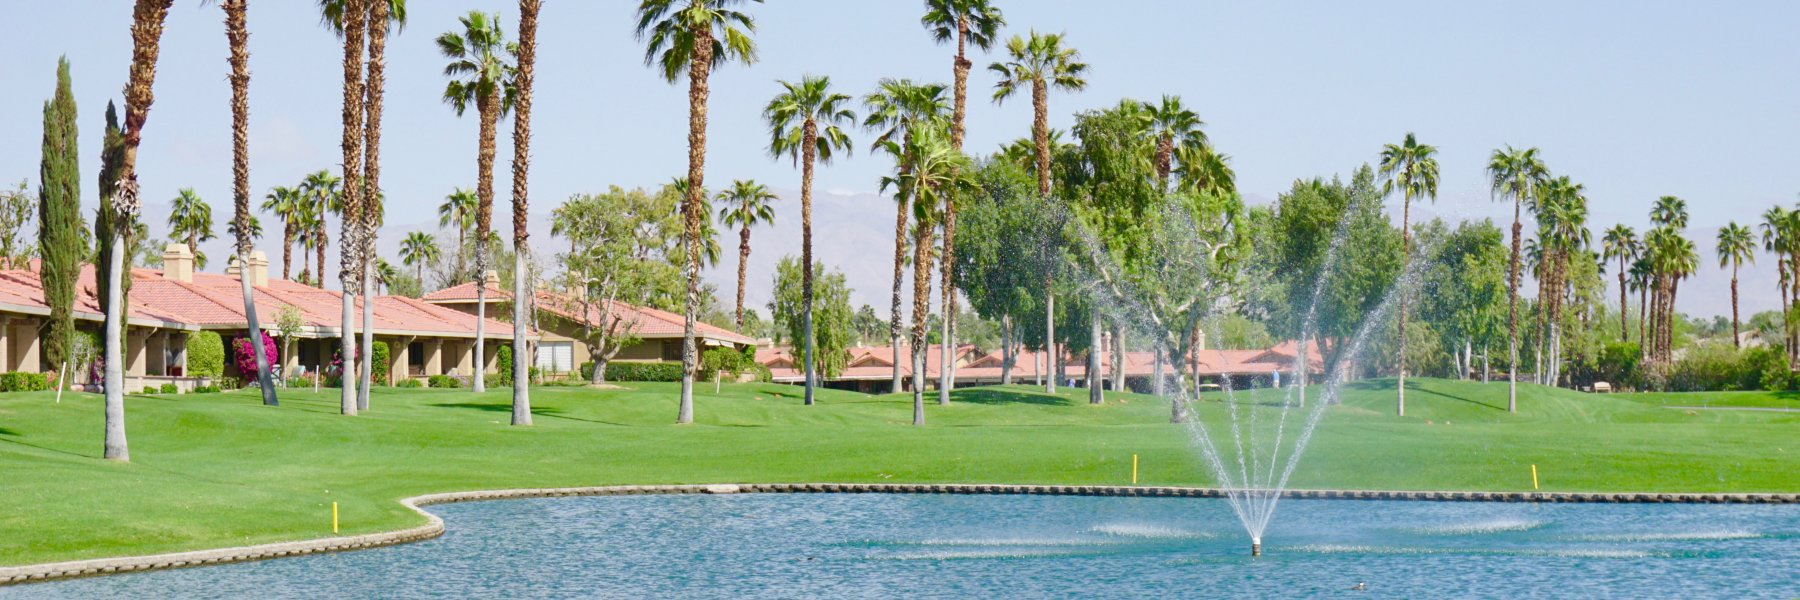 Chaparral Country Club is a community of homes in Palm Desert California